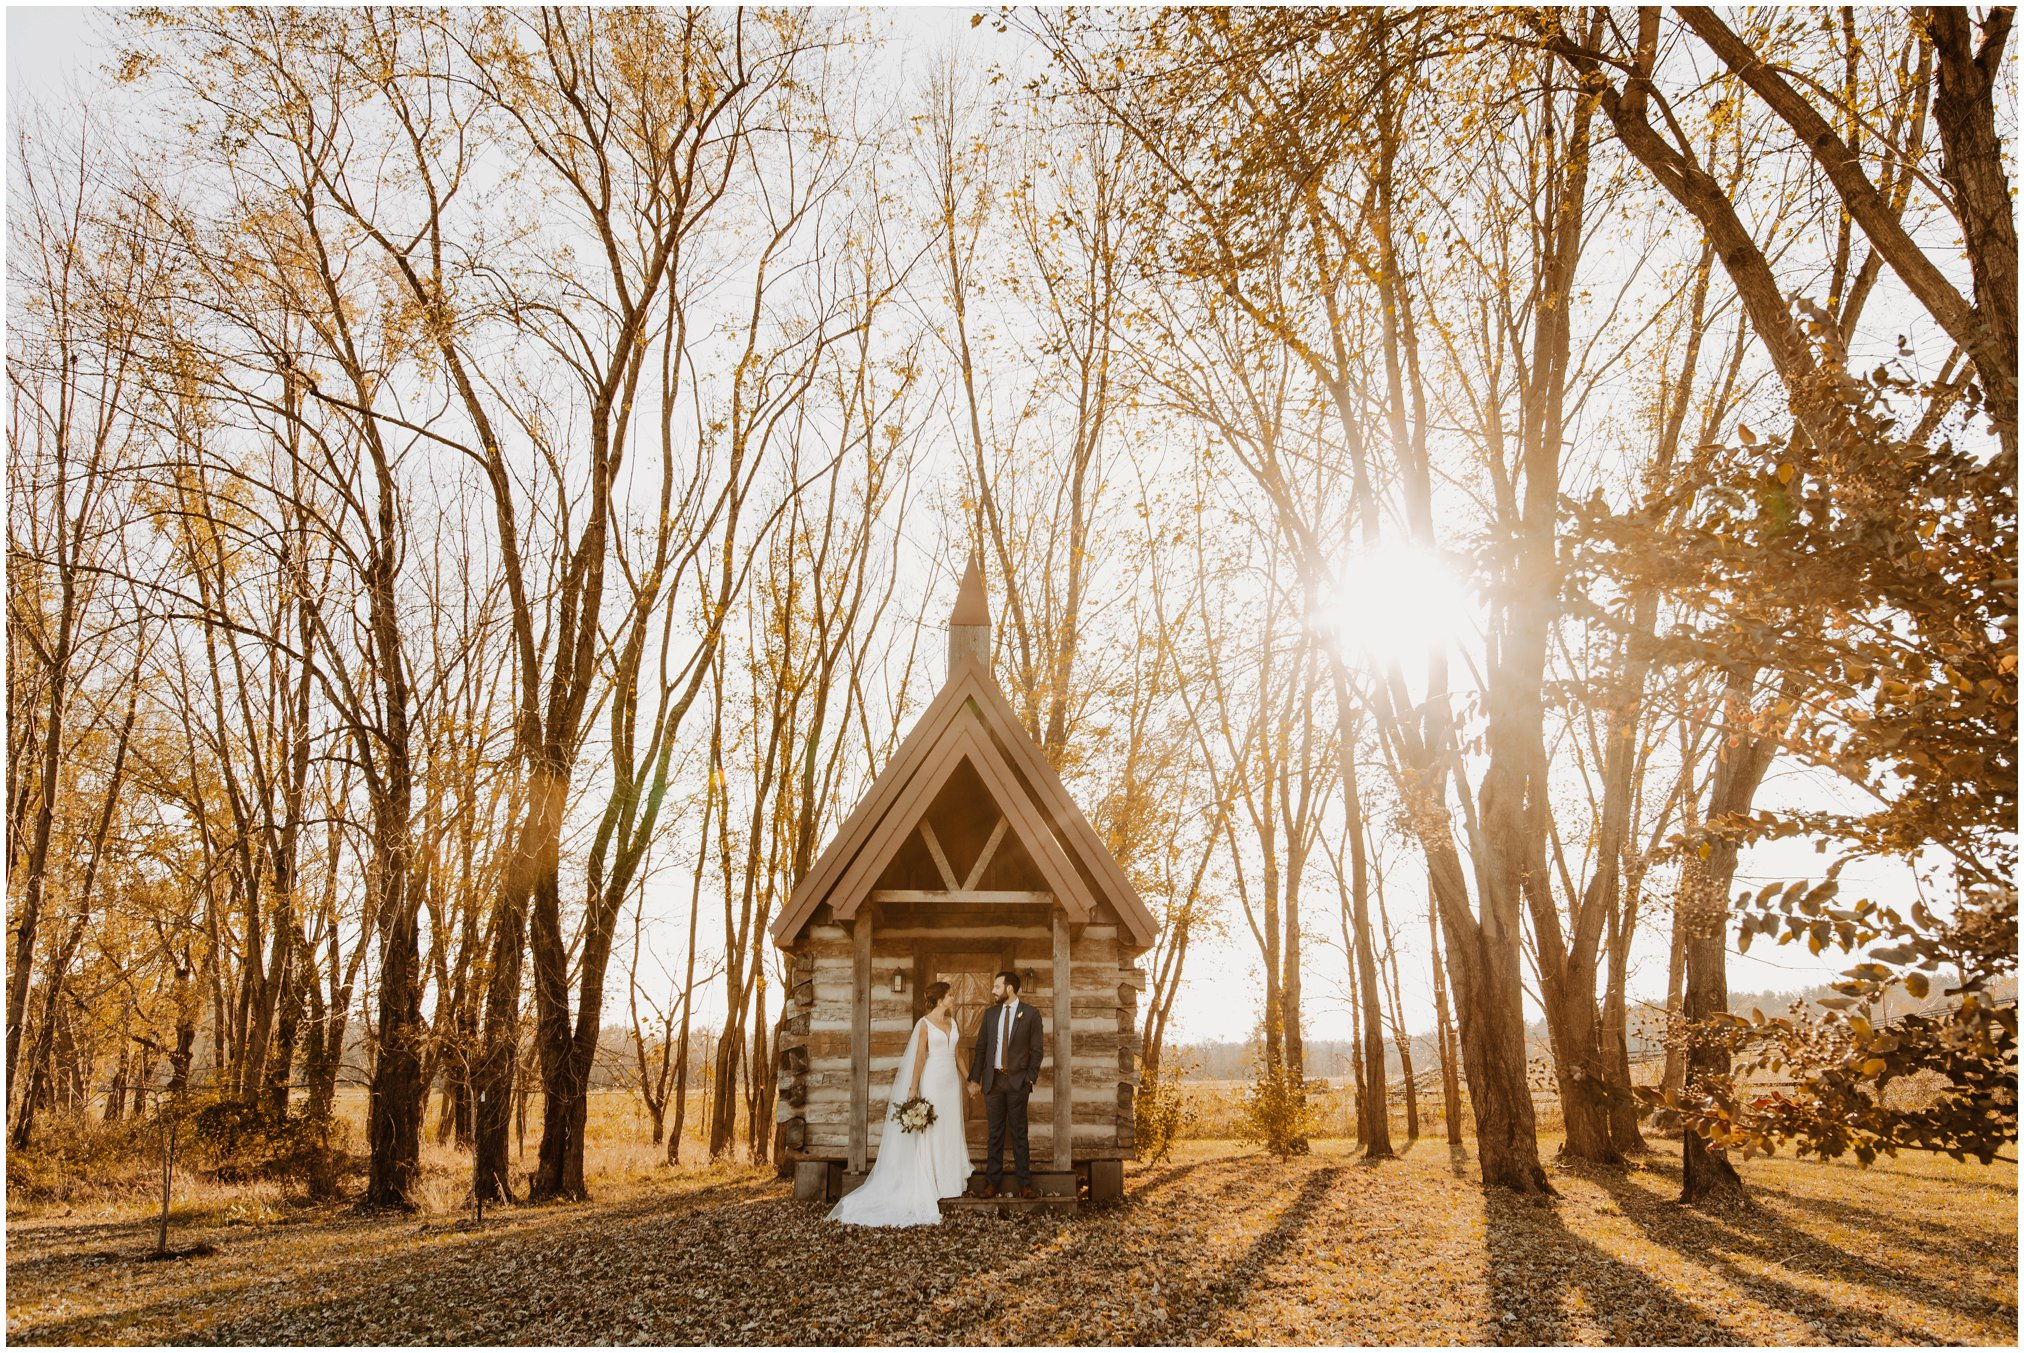 Sunset wedding pictures at cabin